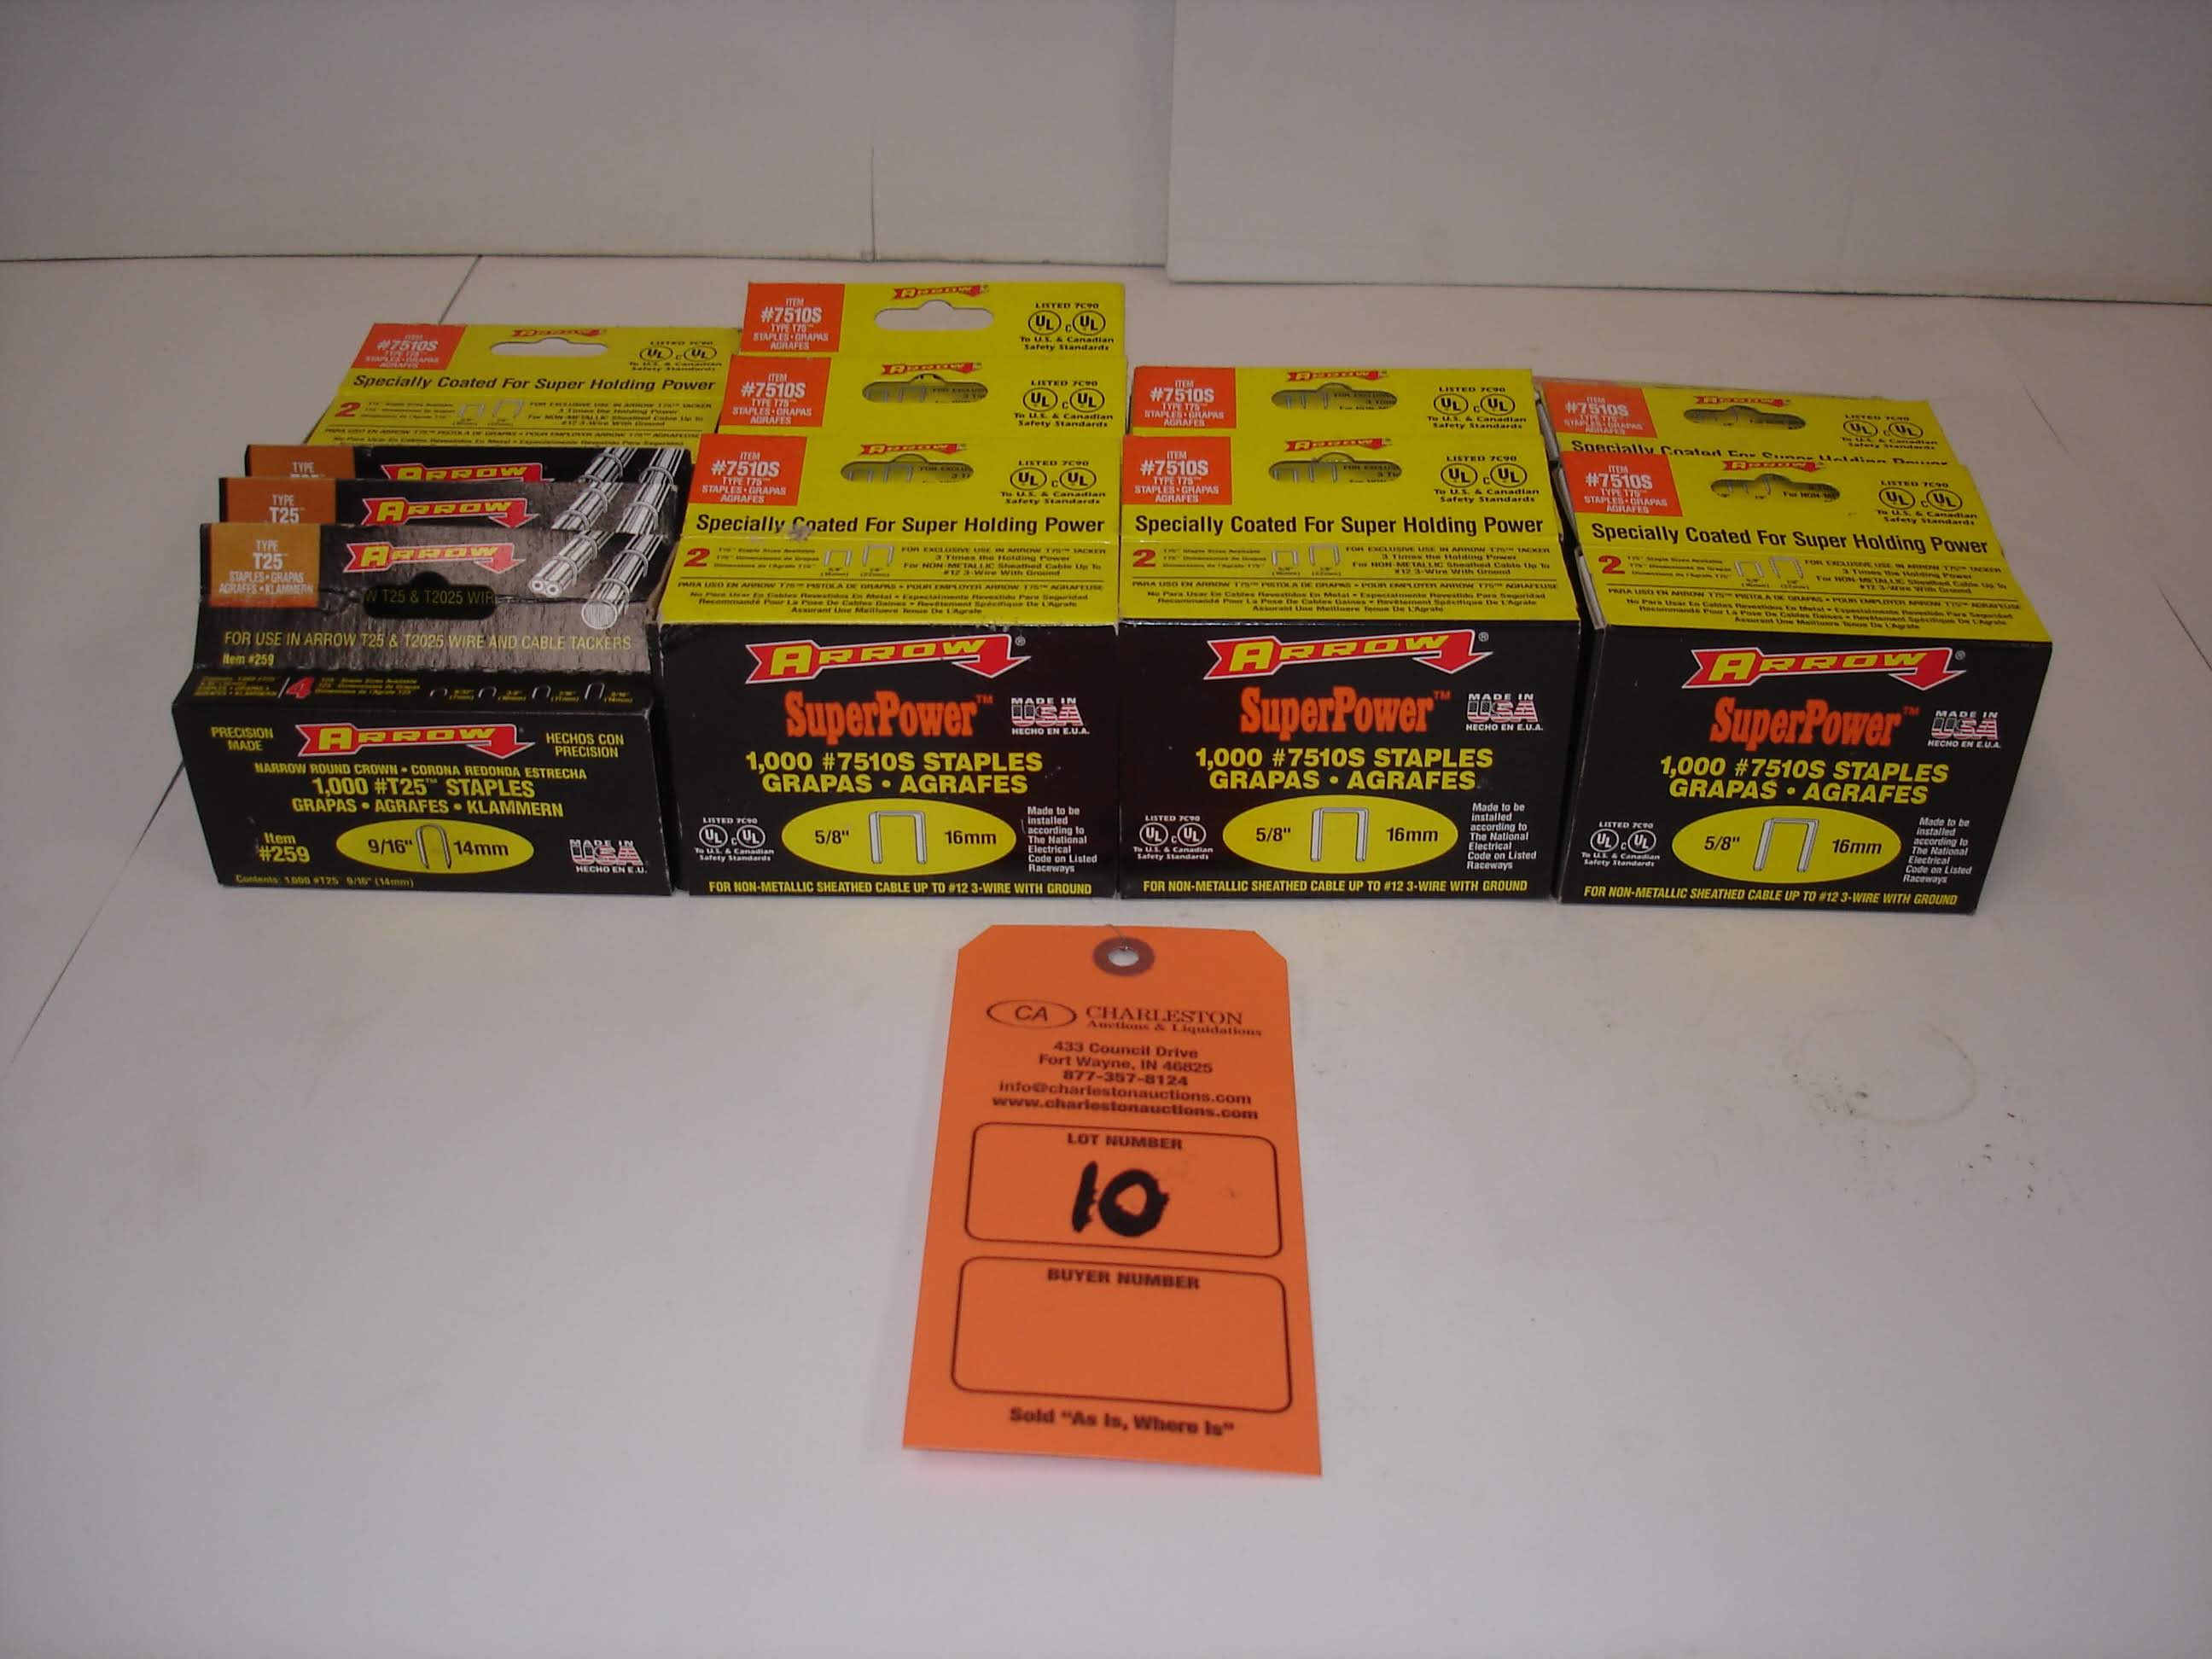 Lot 10 - (13) MISC ARROW STAPLES 1000/BOX: ARROW 7510S AND ALL OTHER ITEMS INCLUDED IN PHOTOS!